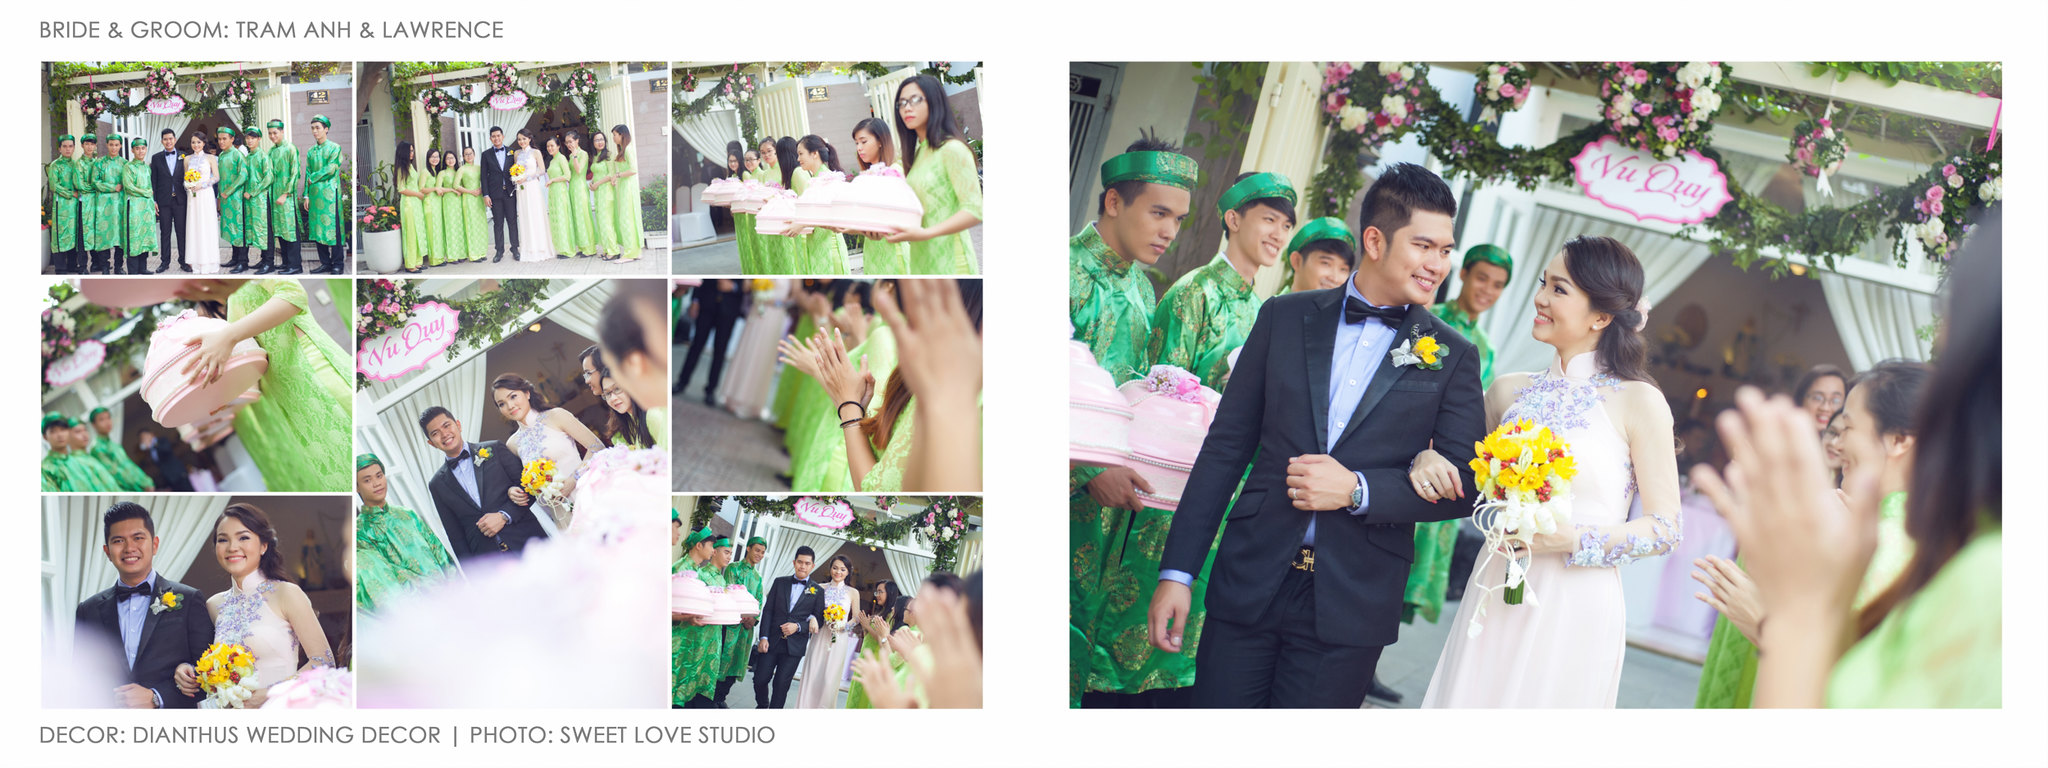 Chup-anh-cuoi-phong-su-Tram-Anh-Lawrence-15